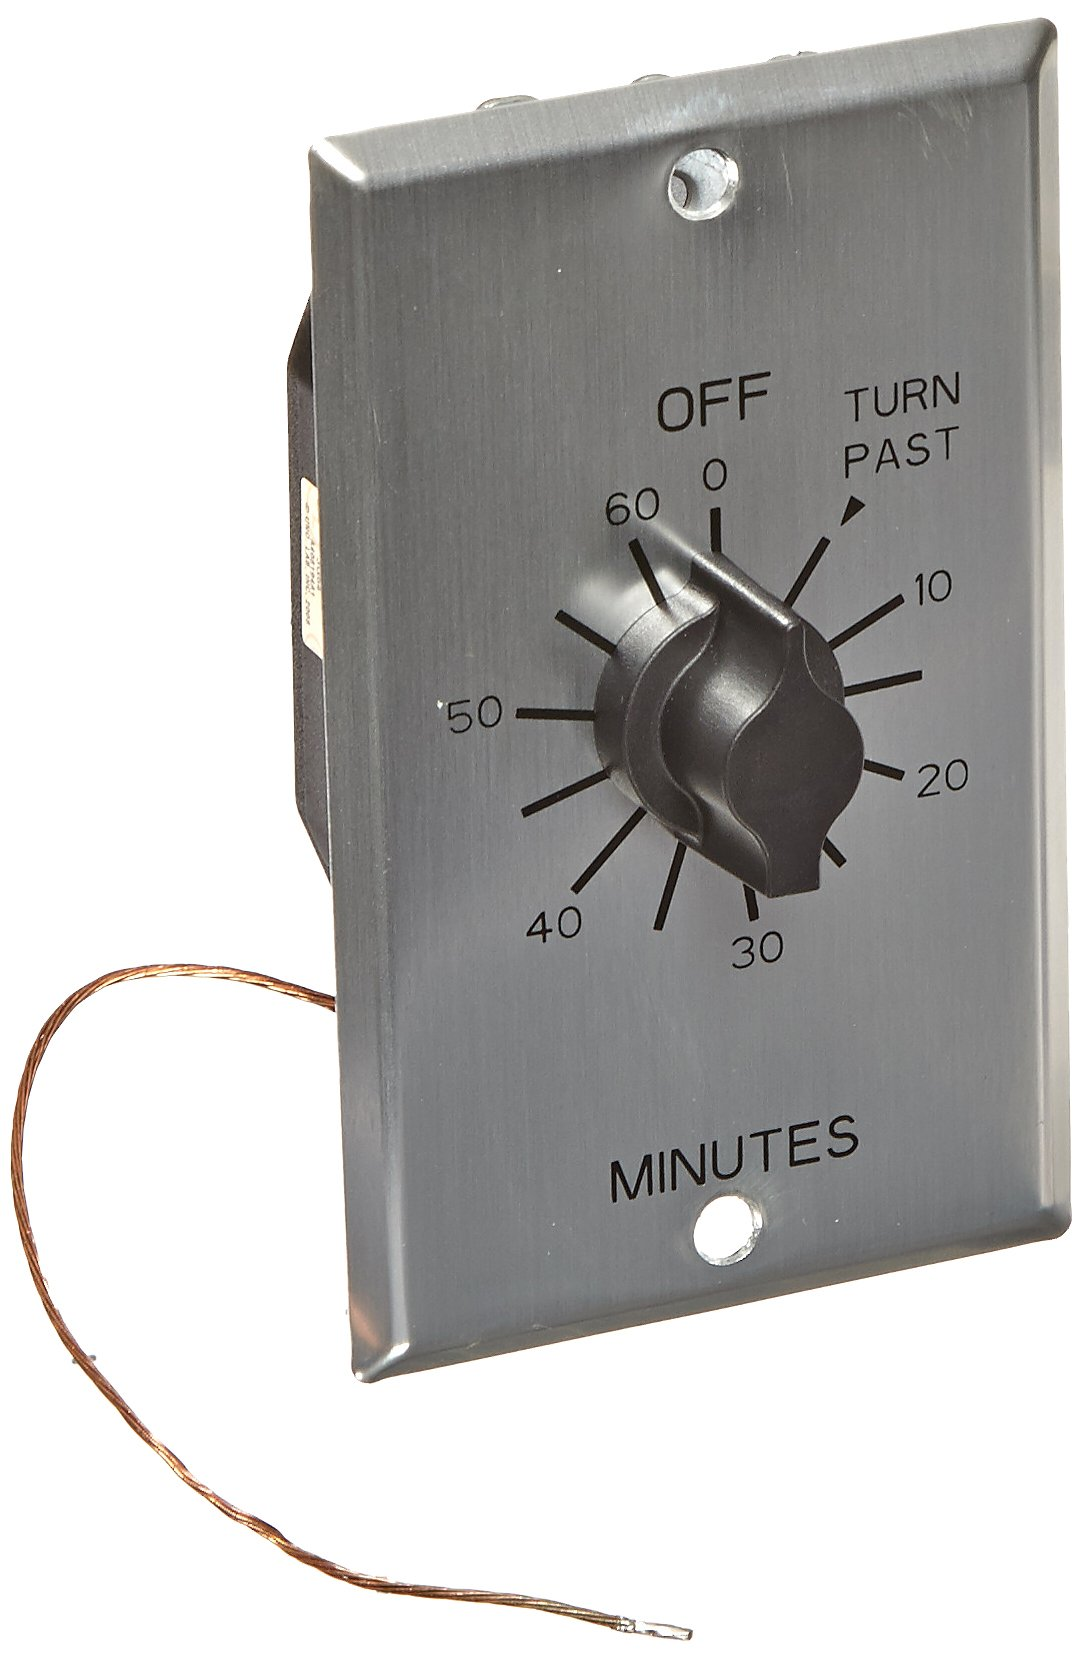 C Series Commercial Style Sringwound Auto Off In-Wall Time Switch, 60 Minute Timer Length, DPST Switch Type